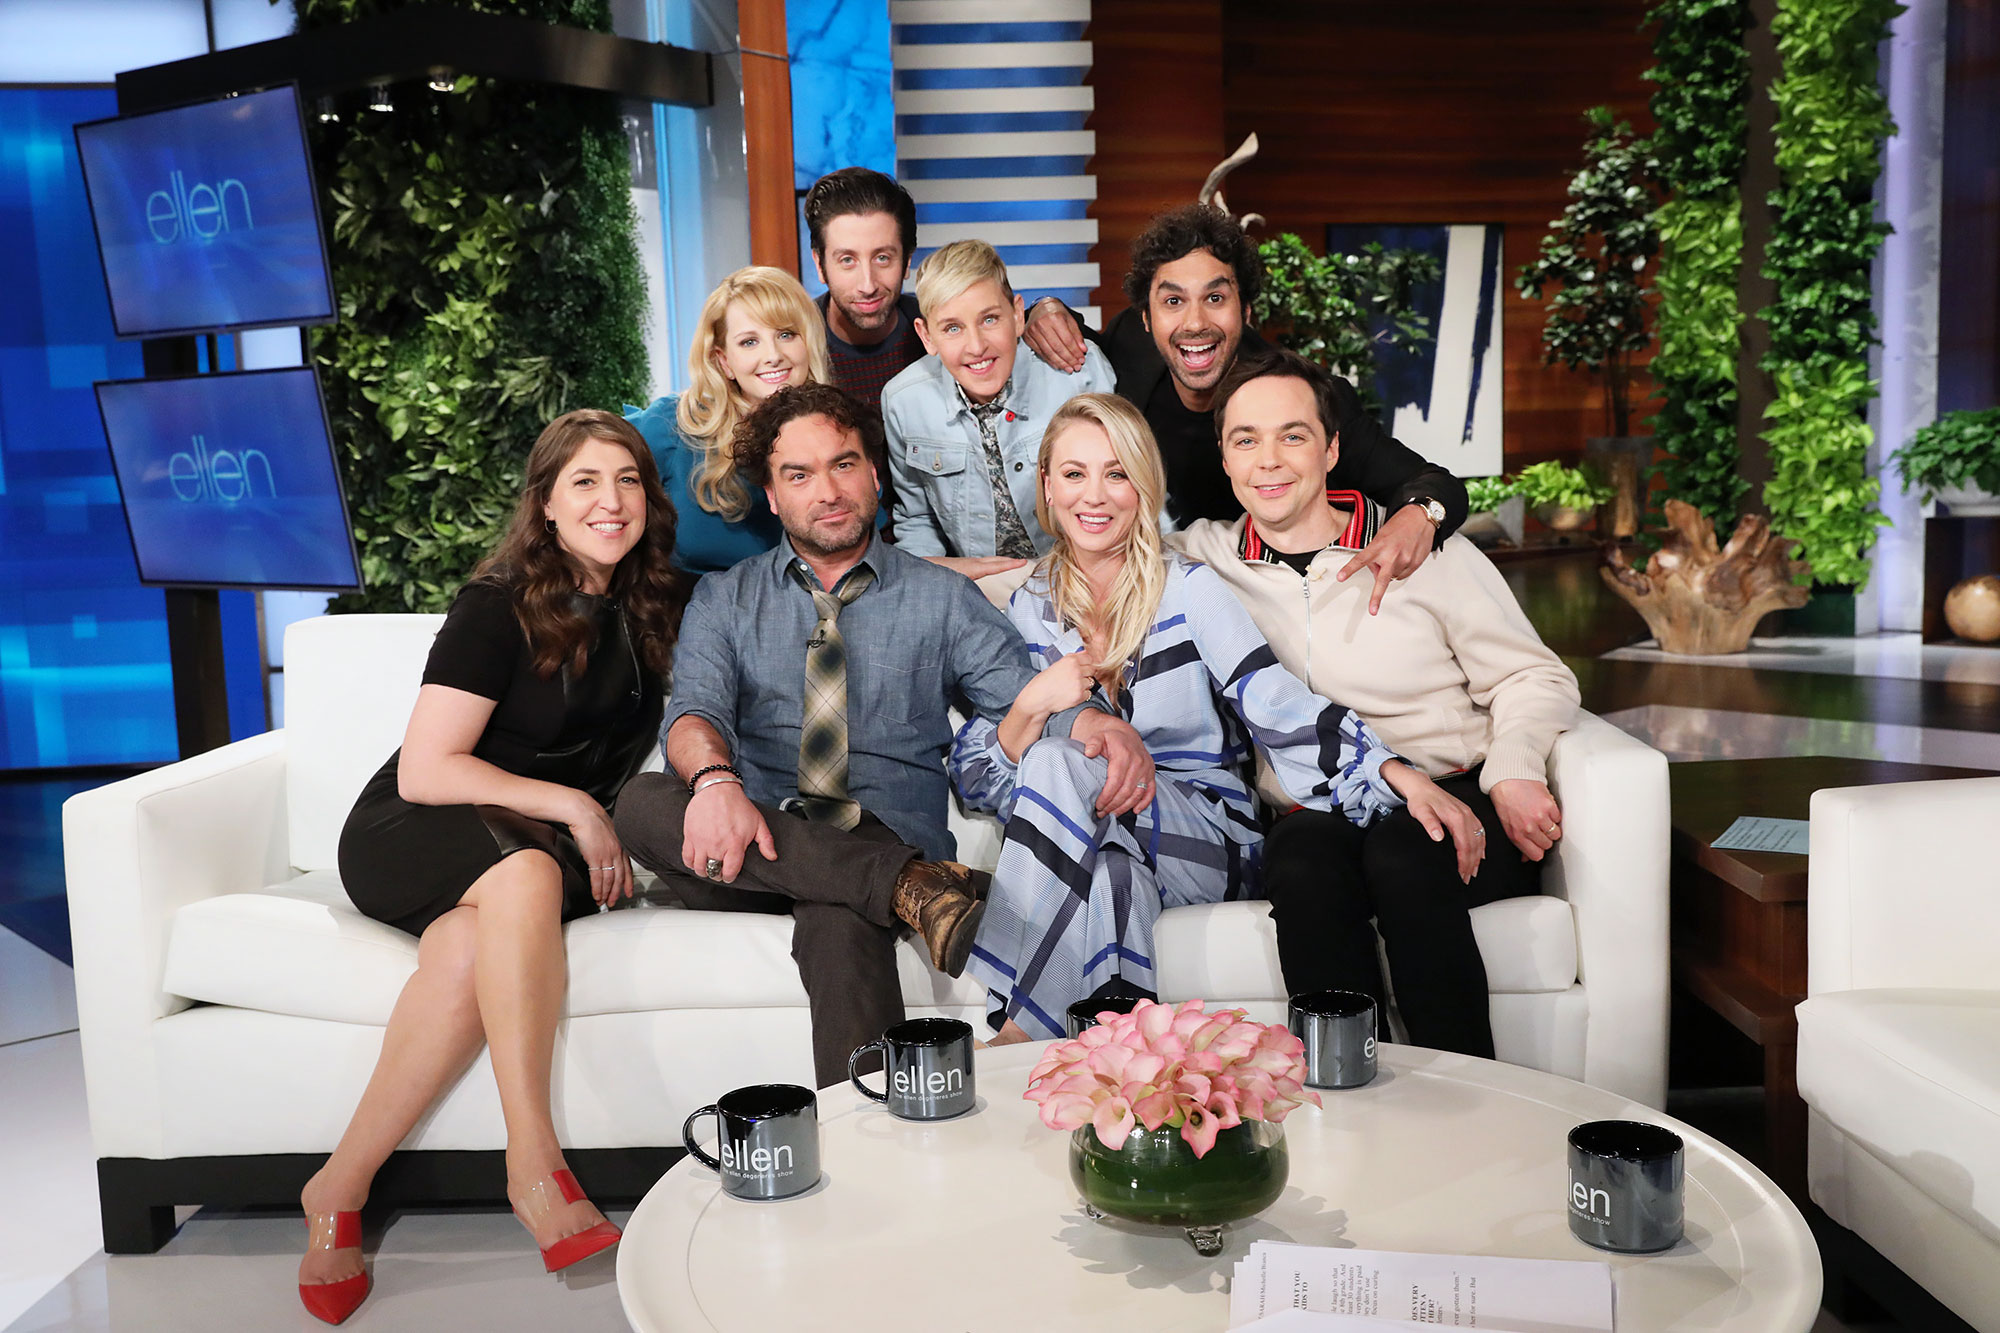 The Big Bang Theory Spinoff Cast The Ellen DeGeneres Show - Mayim Bialik, Melissa Rauch, Simon Helberg, Ellen DeGeneres, Kunal Nayyar, Jim Parsons, Kaley Cuoco and Johnny Galecki on 'The Ellen DeGeneres show.